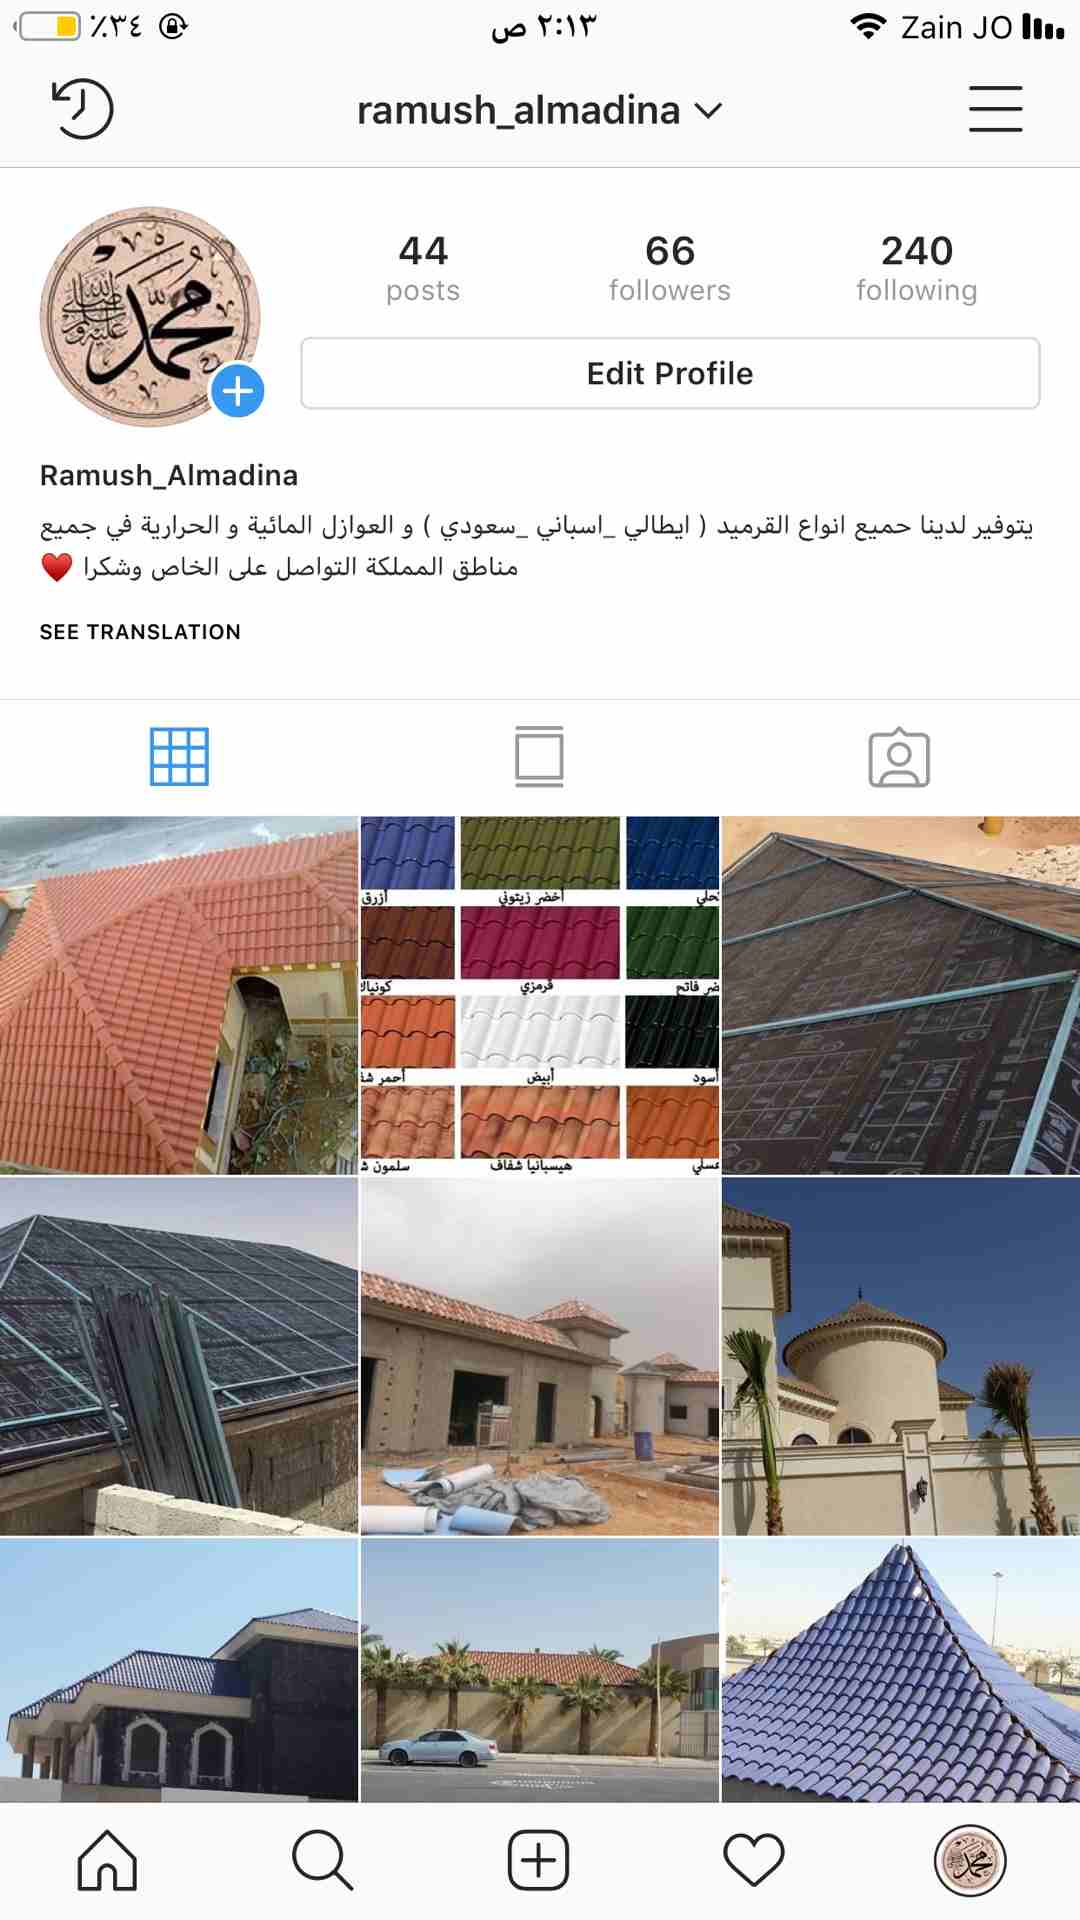 Air Conditioning & General Maintenance at cheap cost. Call / WhatsApp at 055-5269352 / 050-5737068FREE Inspection, Annual Contract, Discounts & Quotatio-  تركيب جميع انواع القرميد...